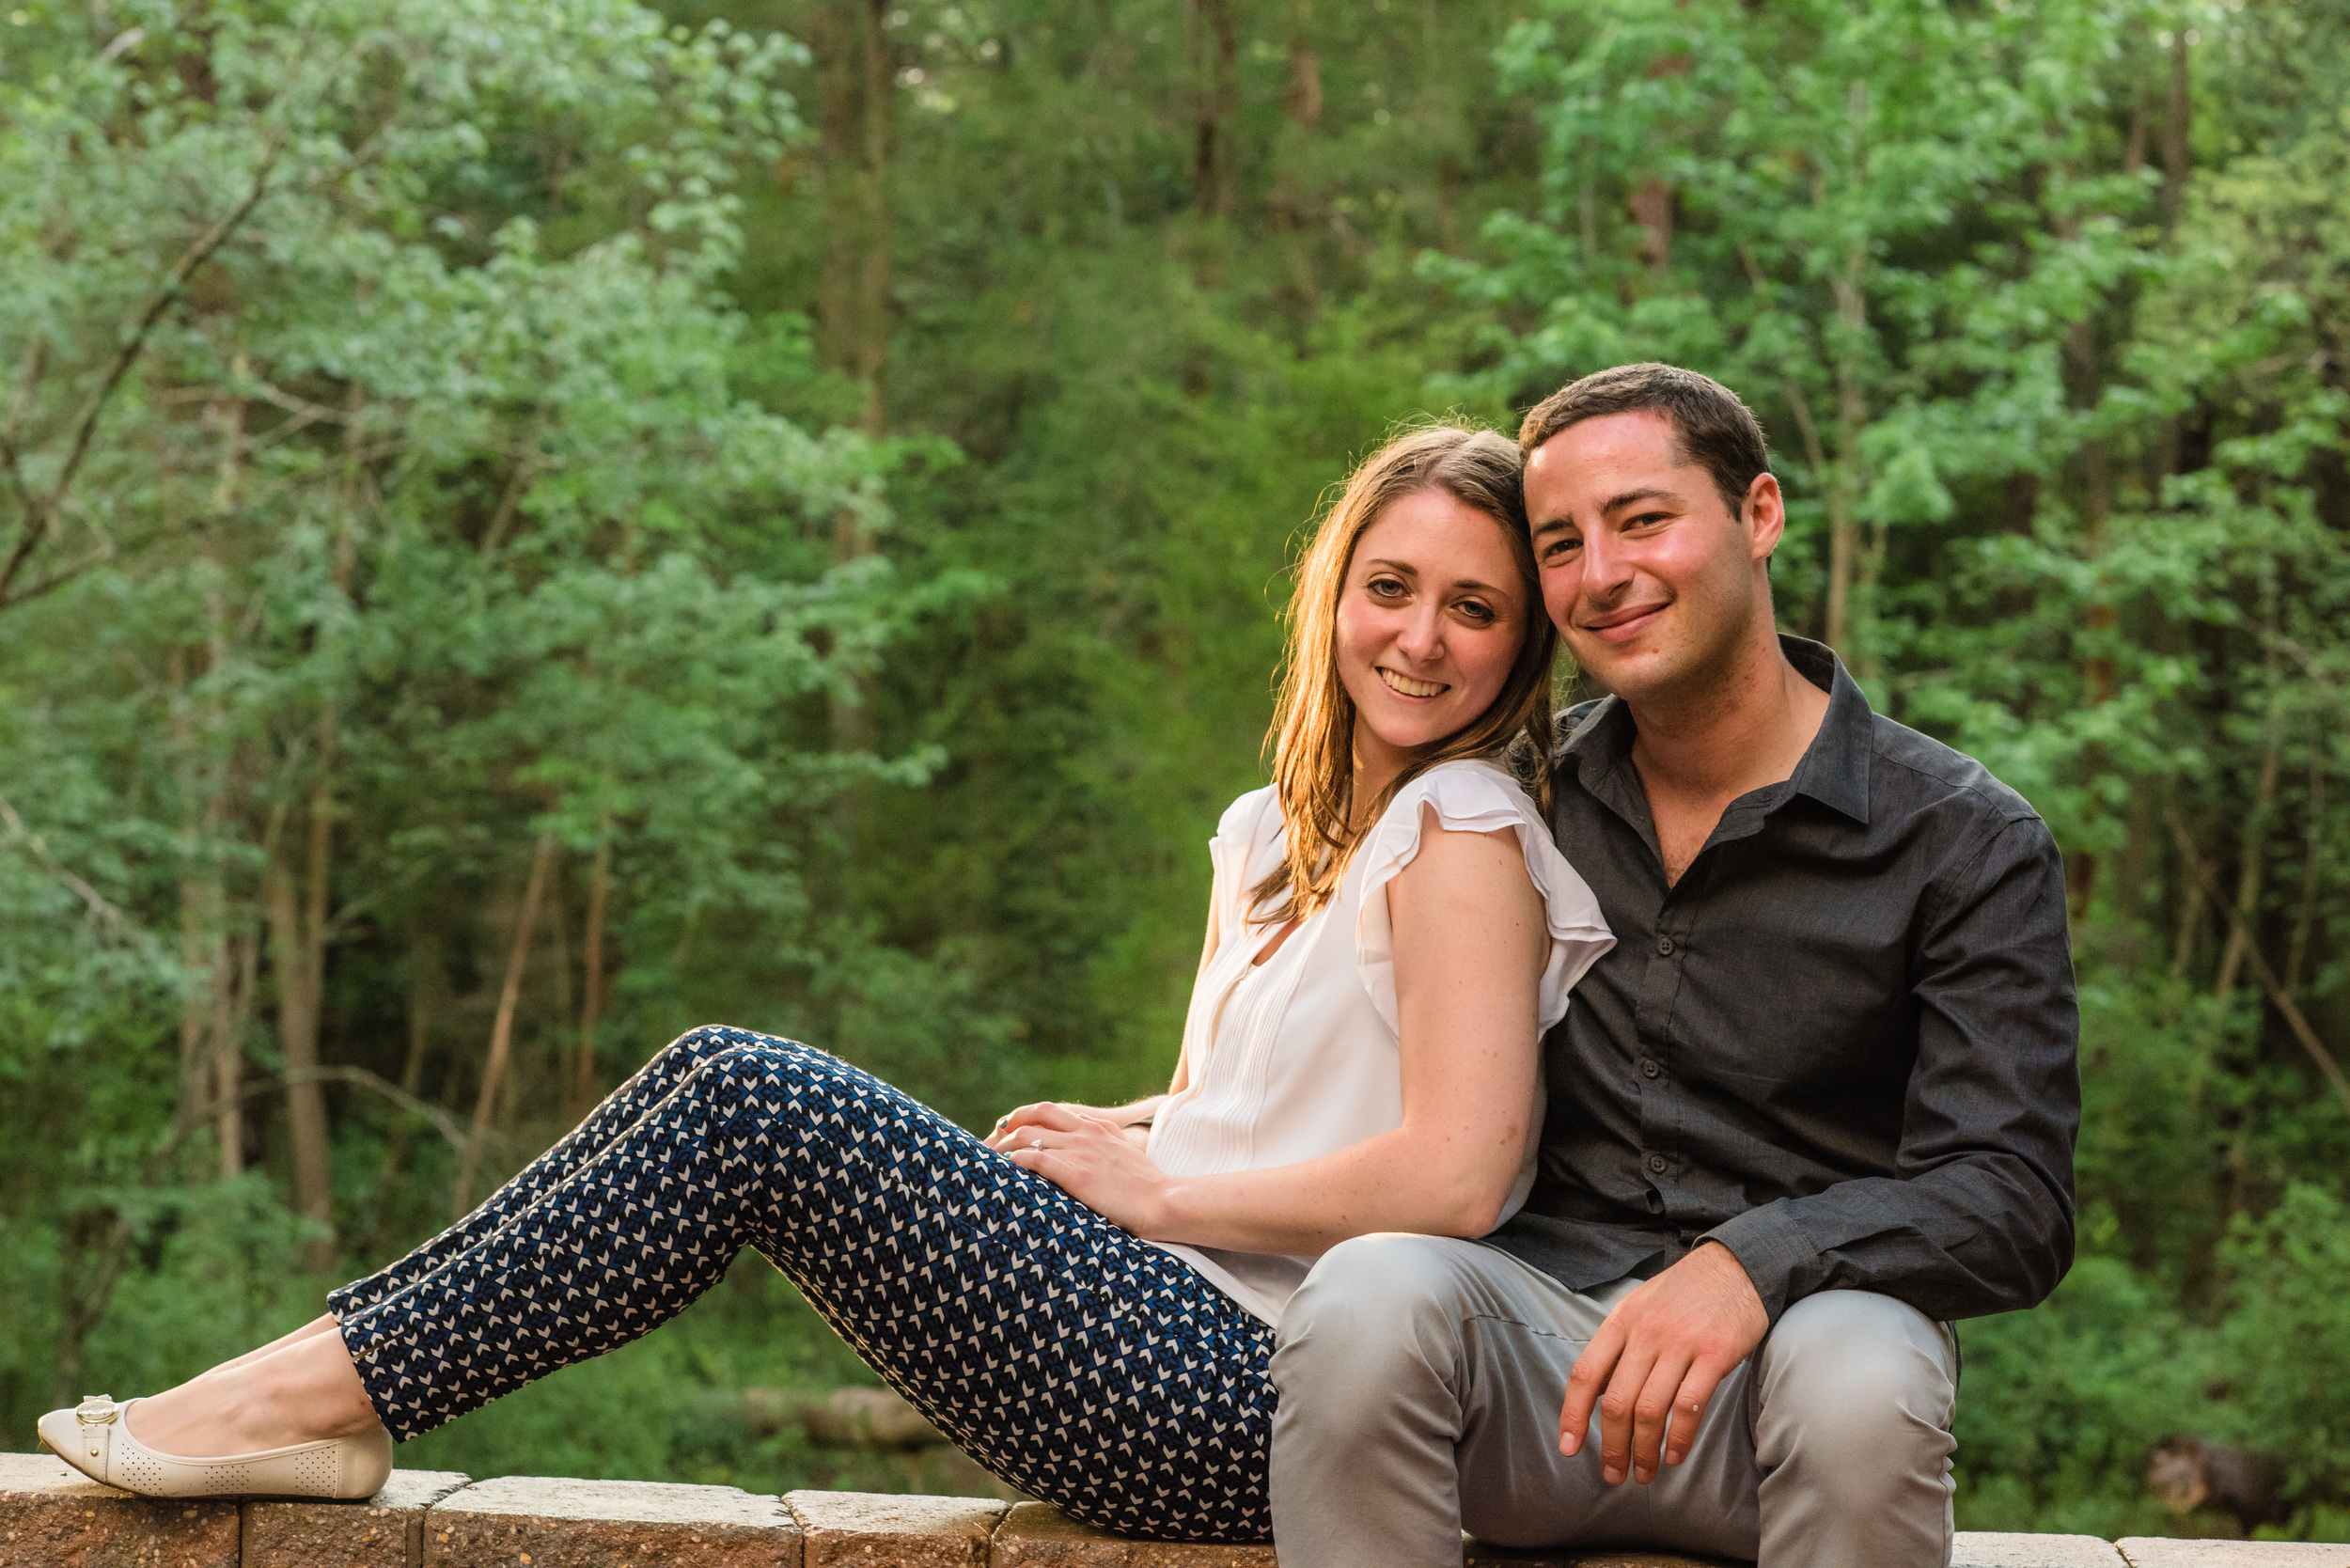 Sweetwater NJ Rustic Style Proposal and Engagement Photos Howard & Sarah 14